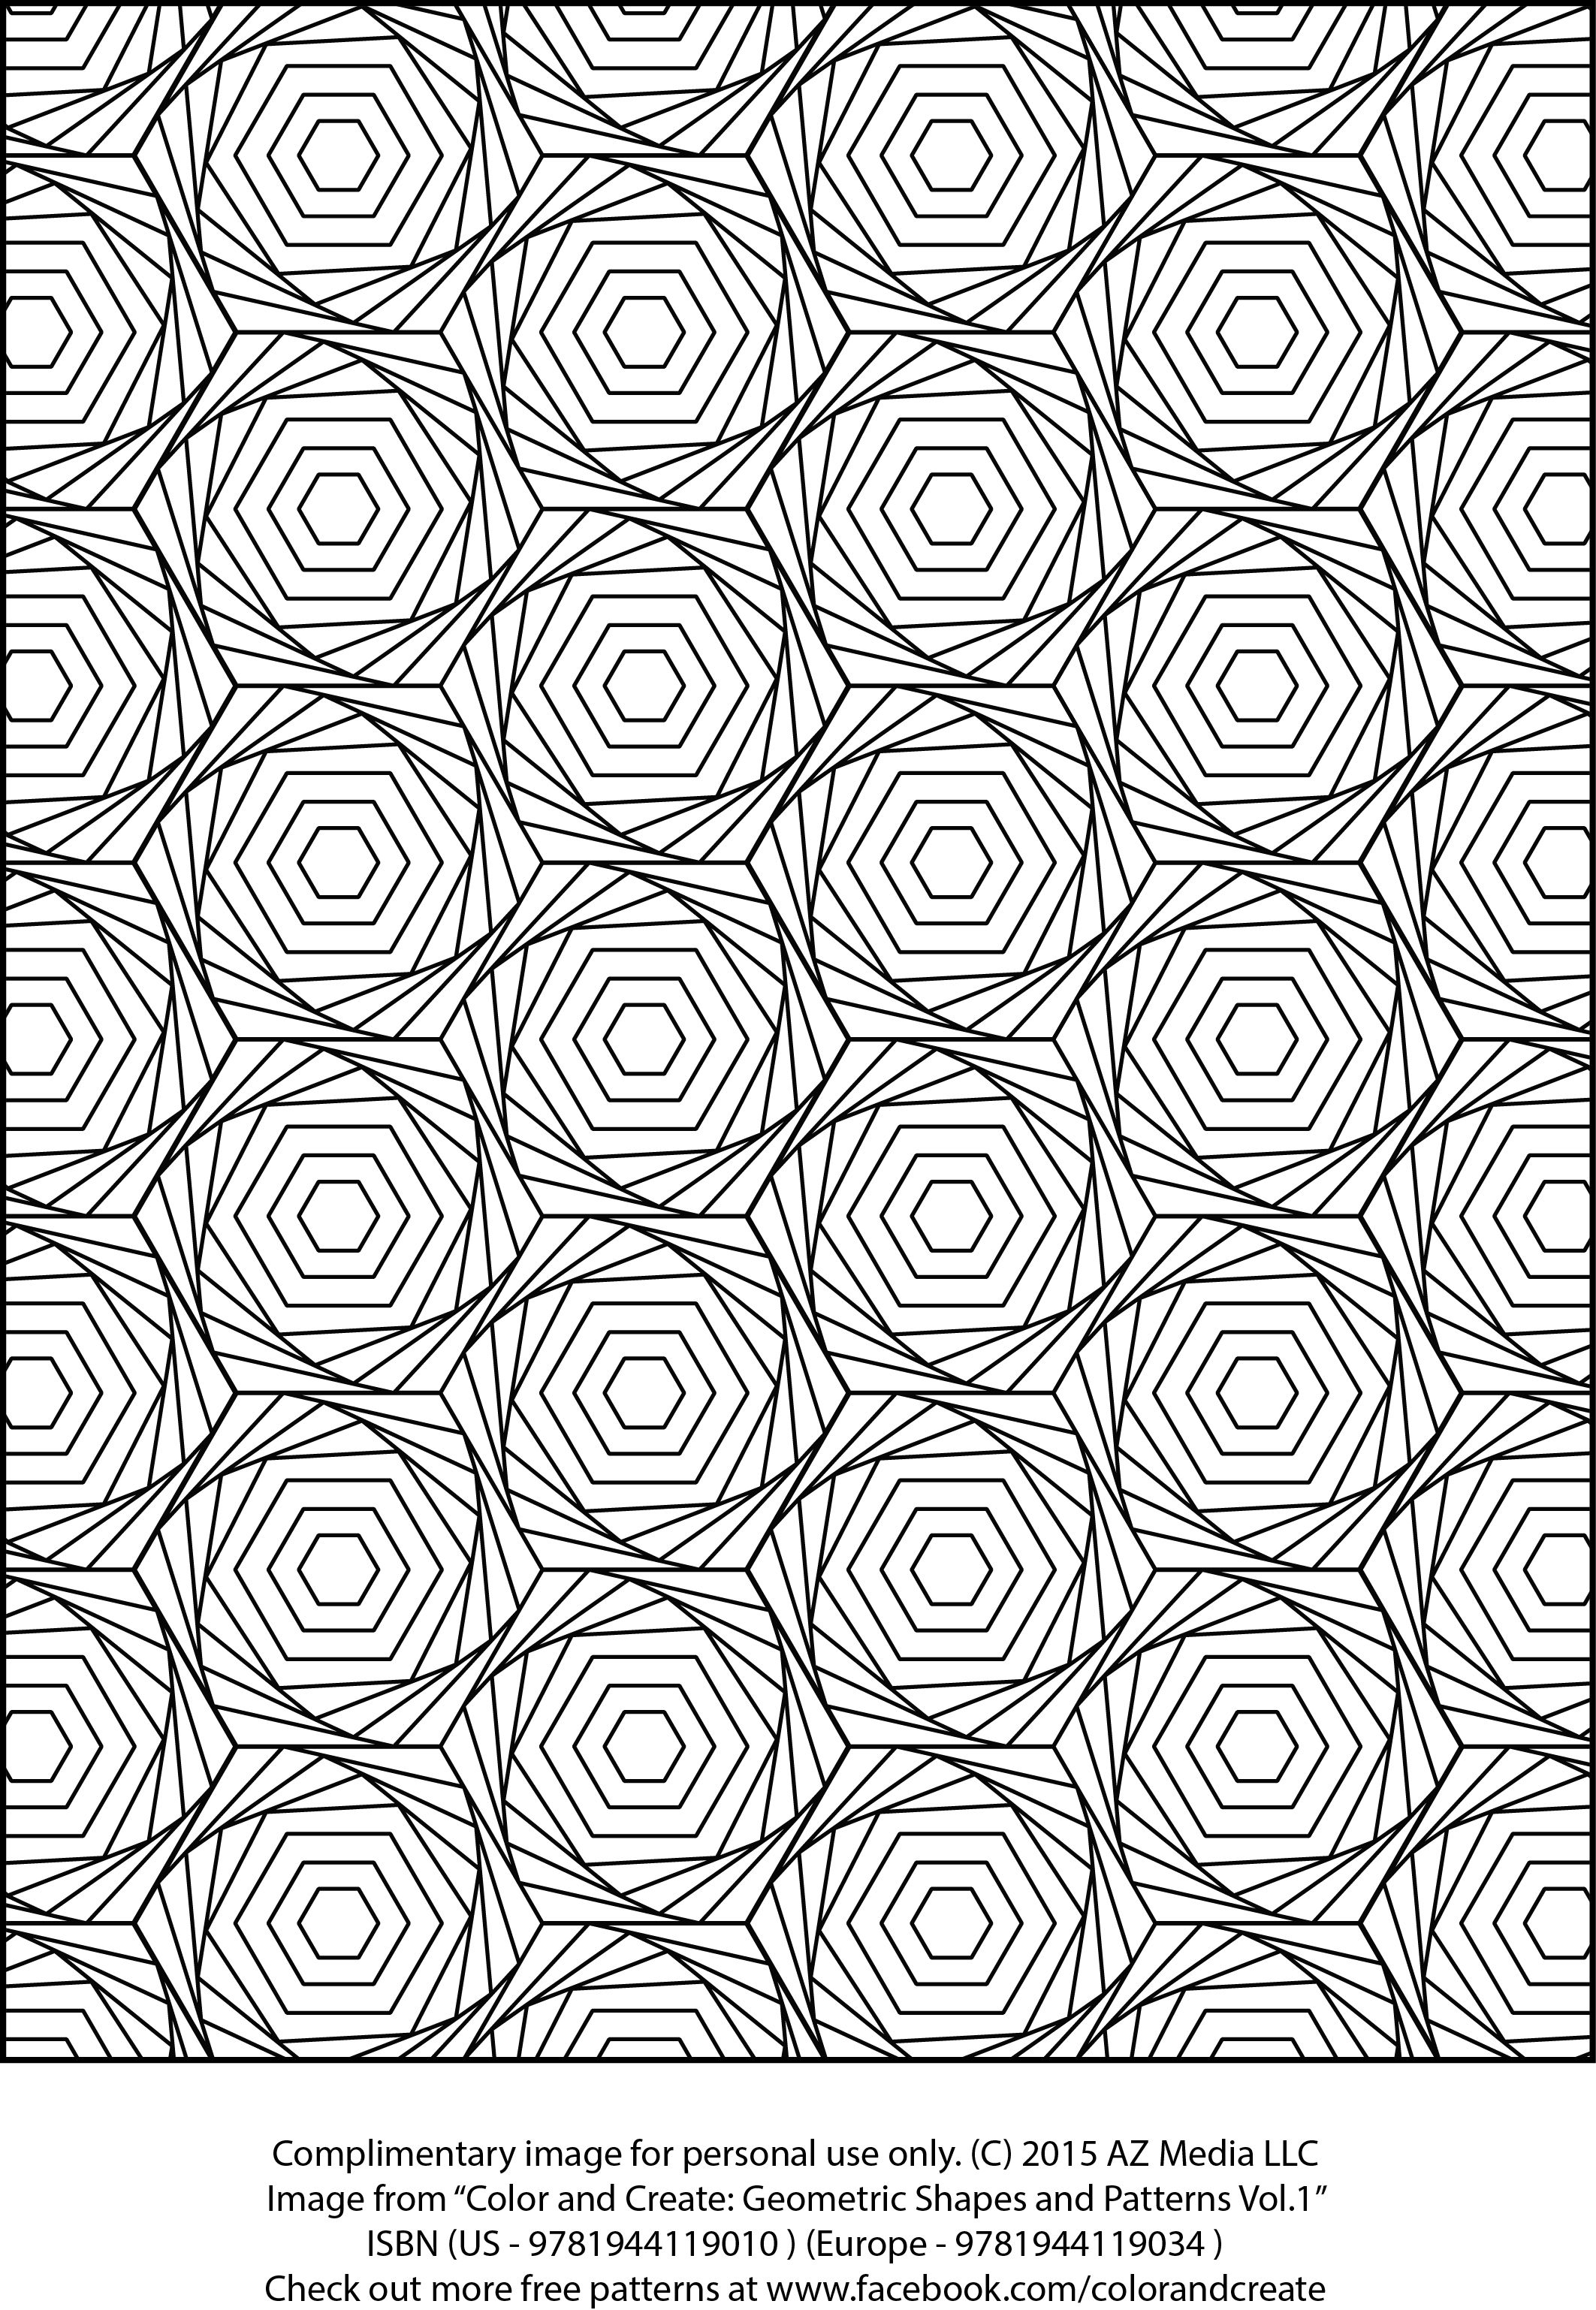 Complimentary Coloring Sheet From Color And Create Geometric Shapes And Patterns Vol 1 Geometric Coloring Pages Pattern Coloring Pages Shape Coloring Pages